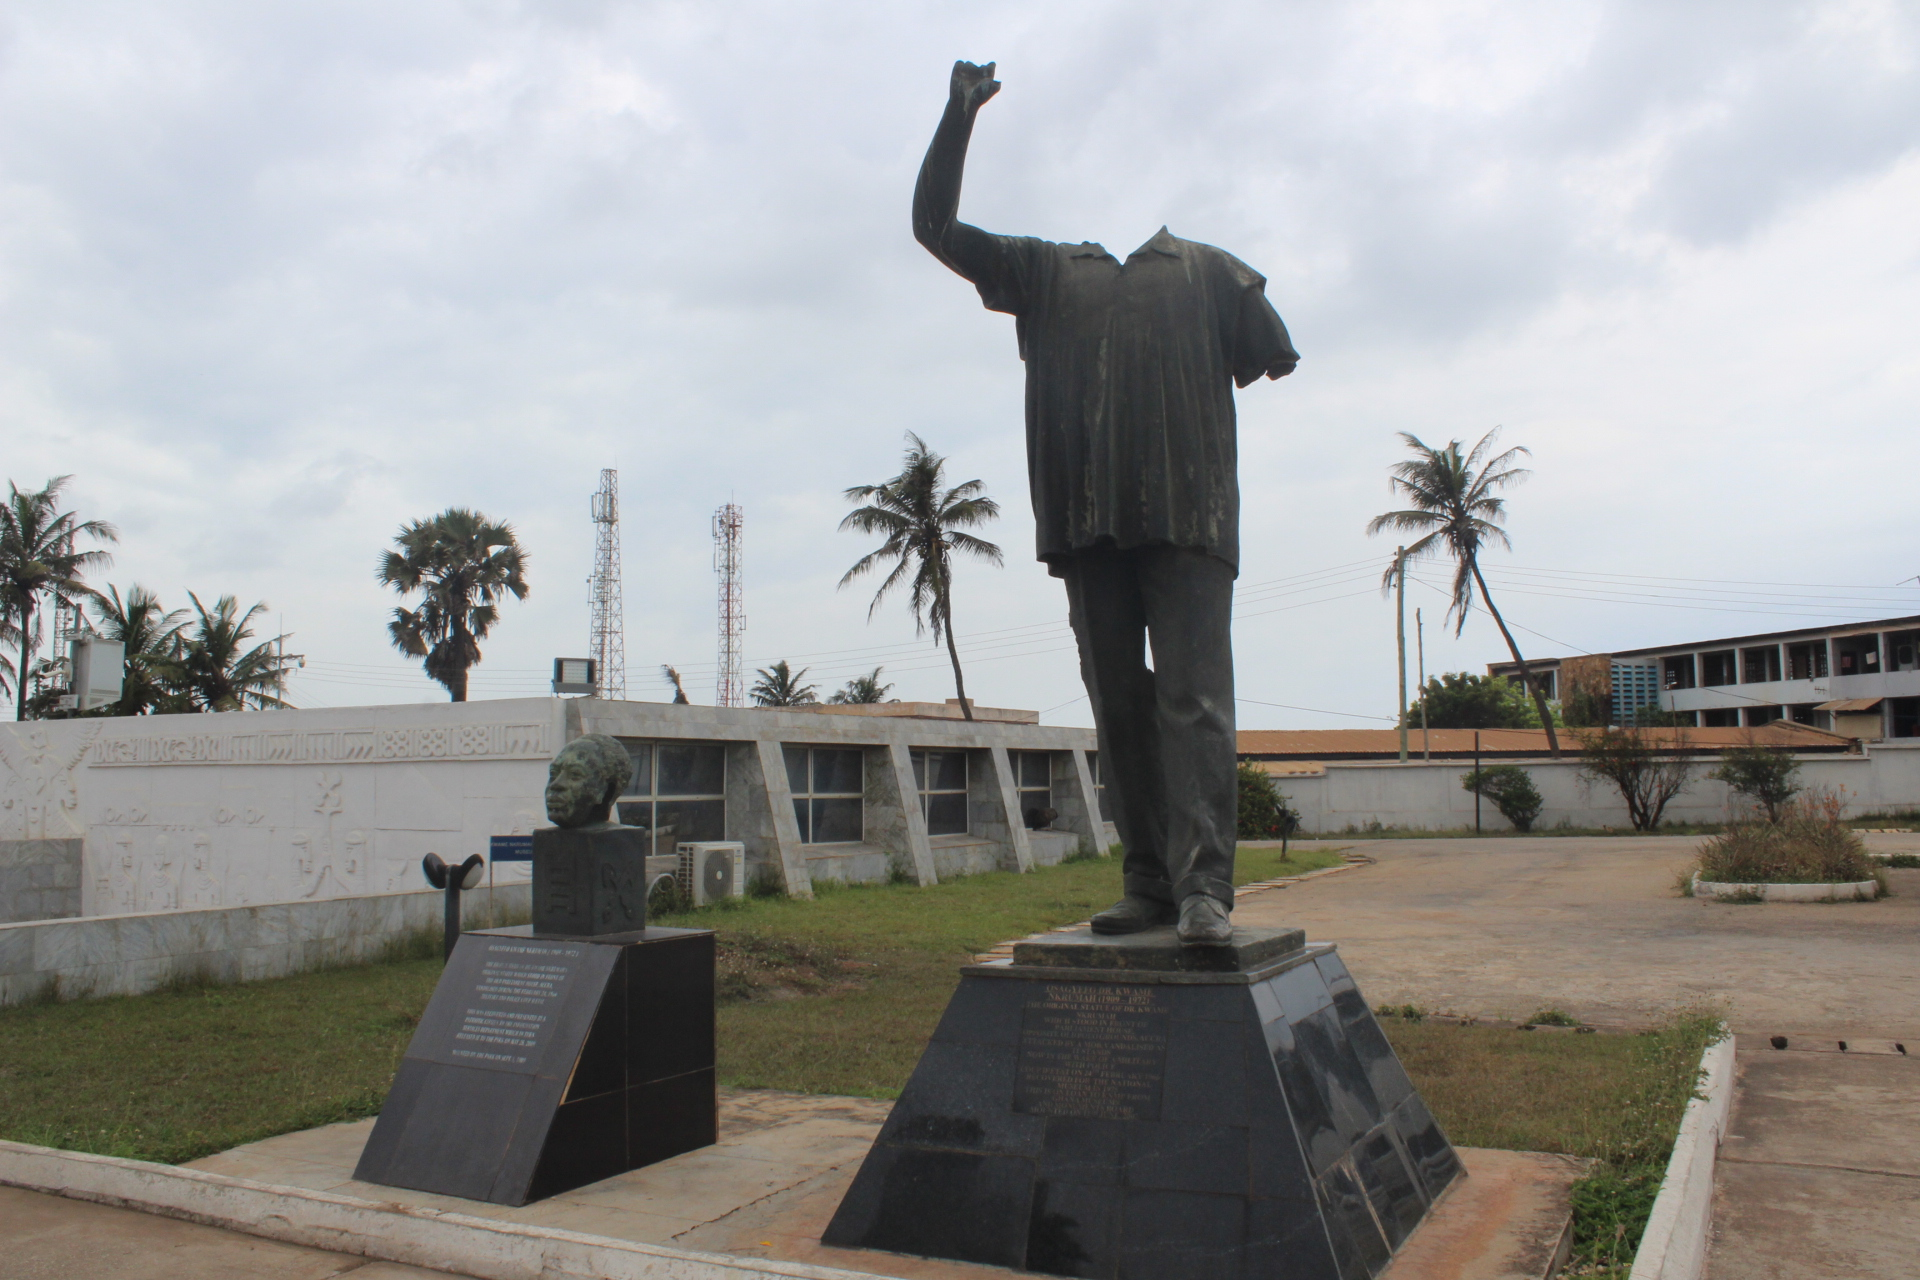 When he was overthrown, this earlier statue of him was vandalized. A patriotic citizen returned the head years later.